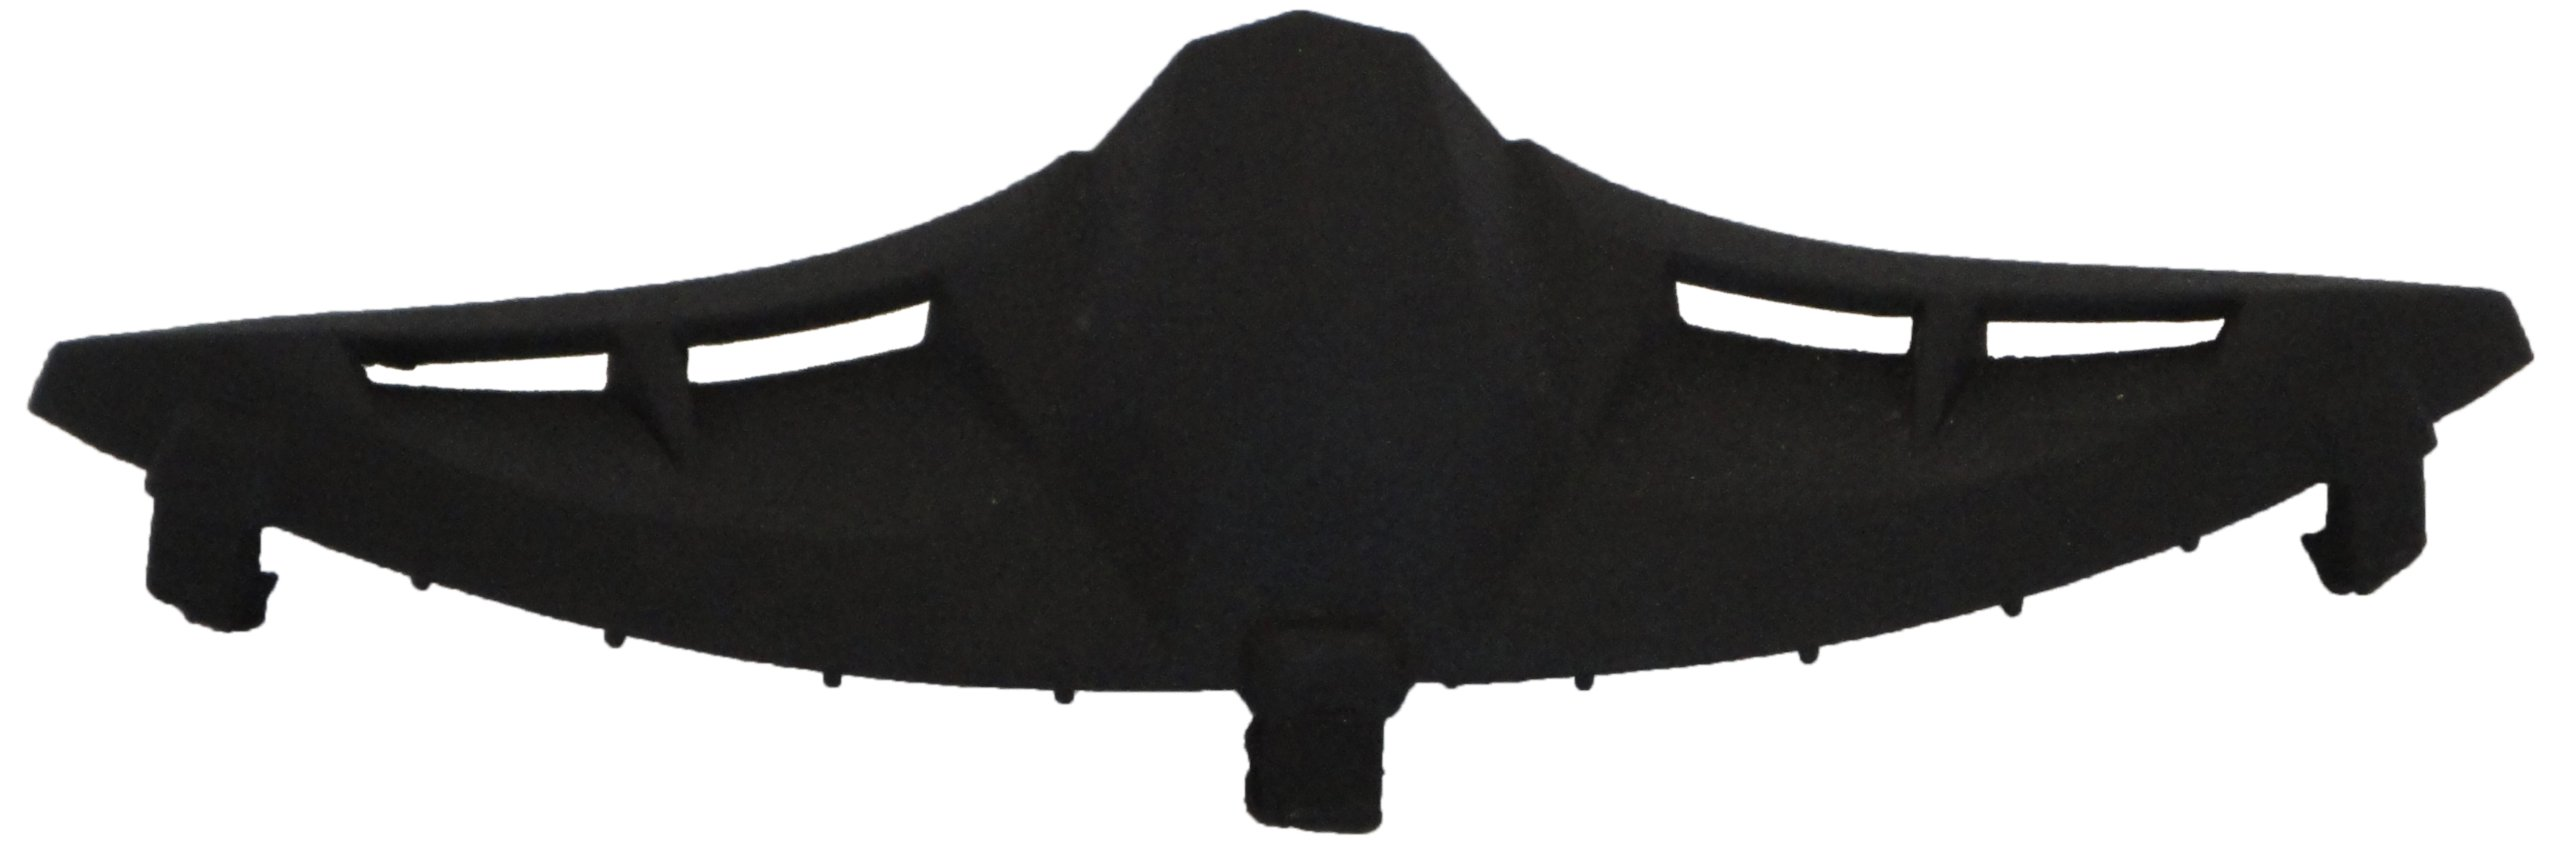 LS2 Helmets Breath Deflector for FF386 Helmets (Black) by LS2 Helmets (Image #1)